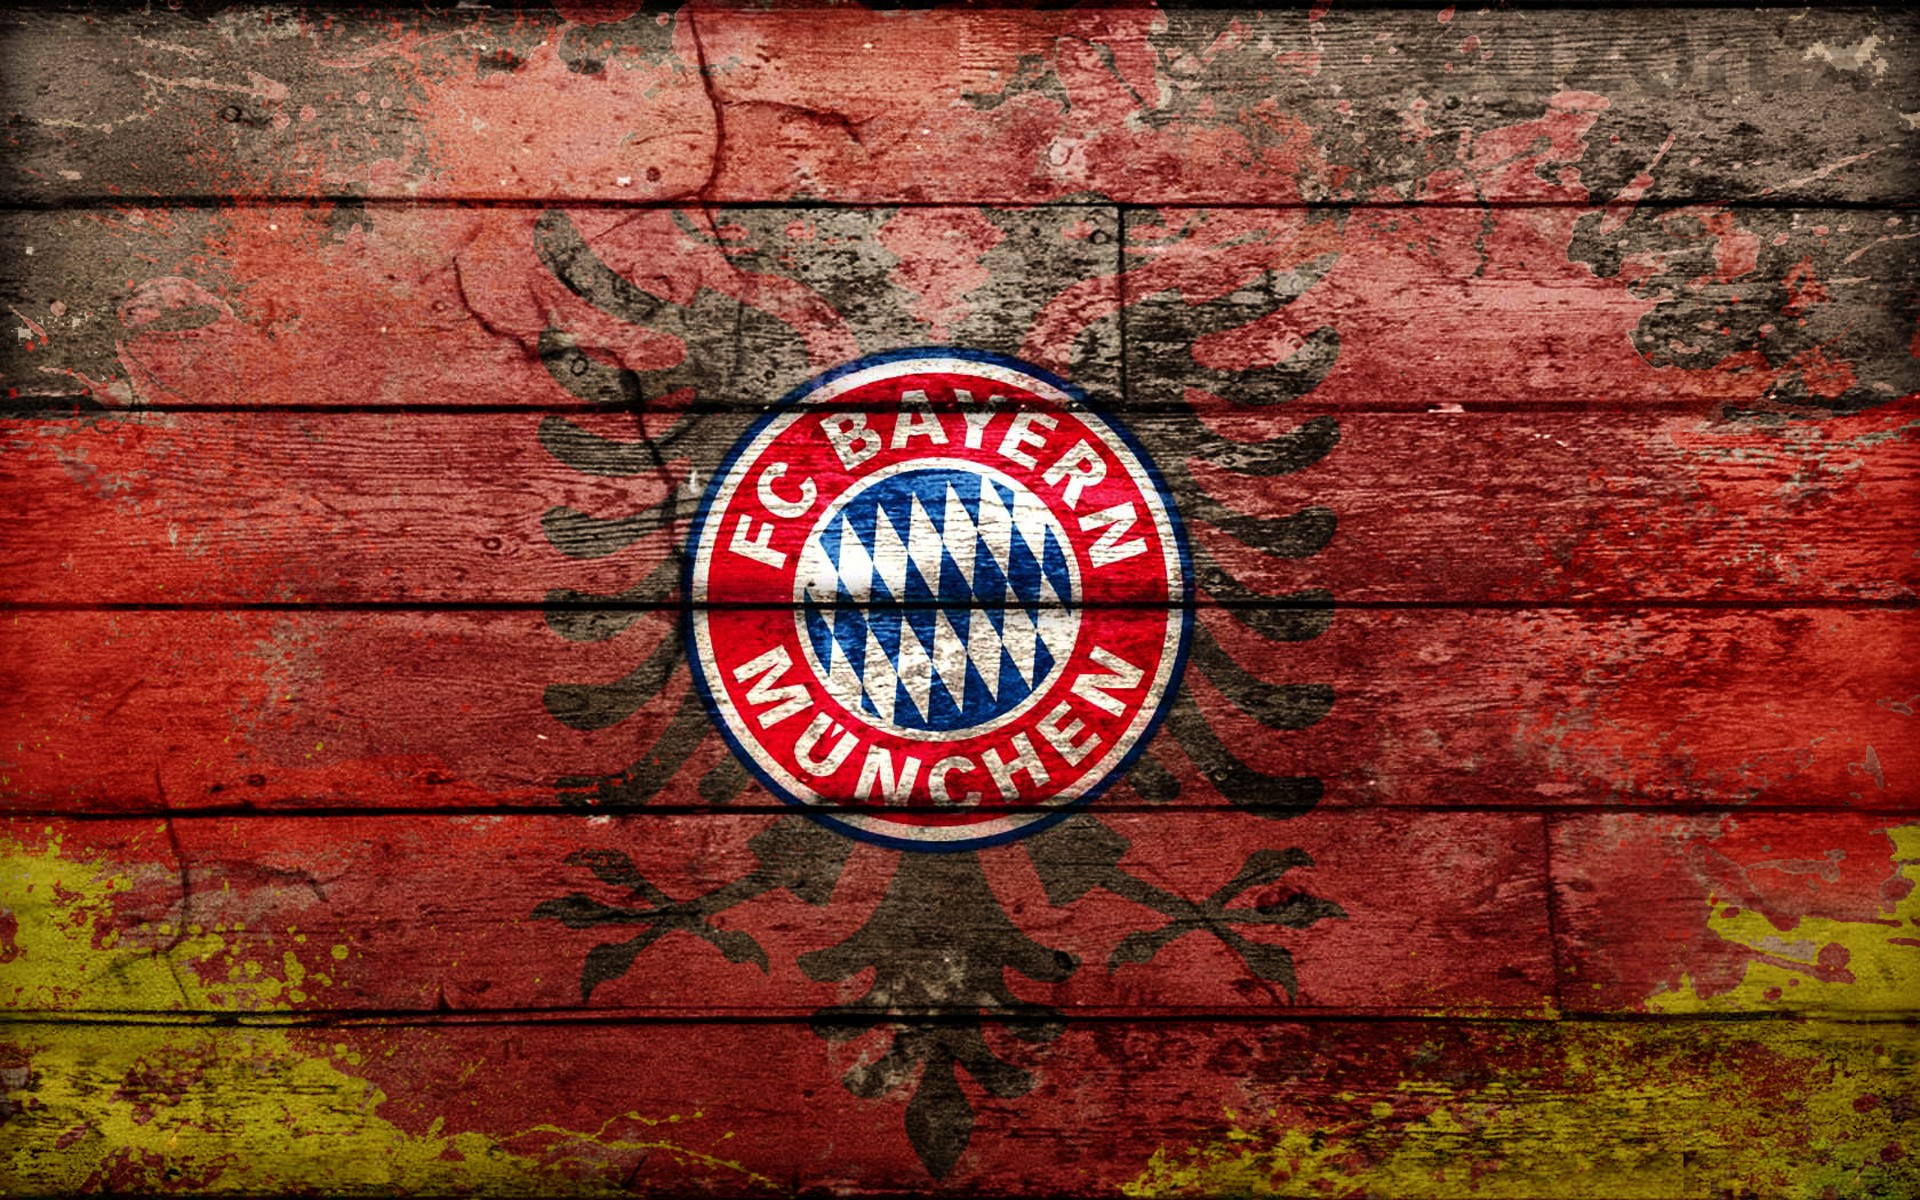 77+ Fc Bayern Munich Hd Wallpapers on WallpaperSafari